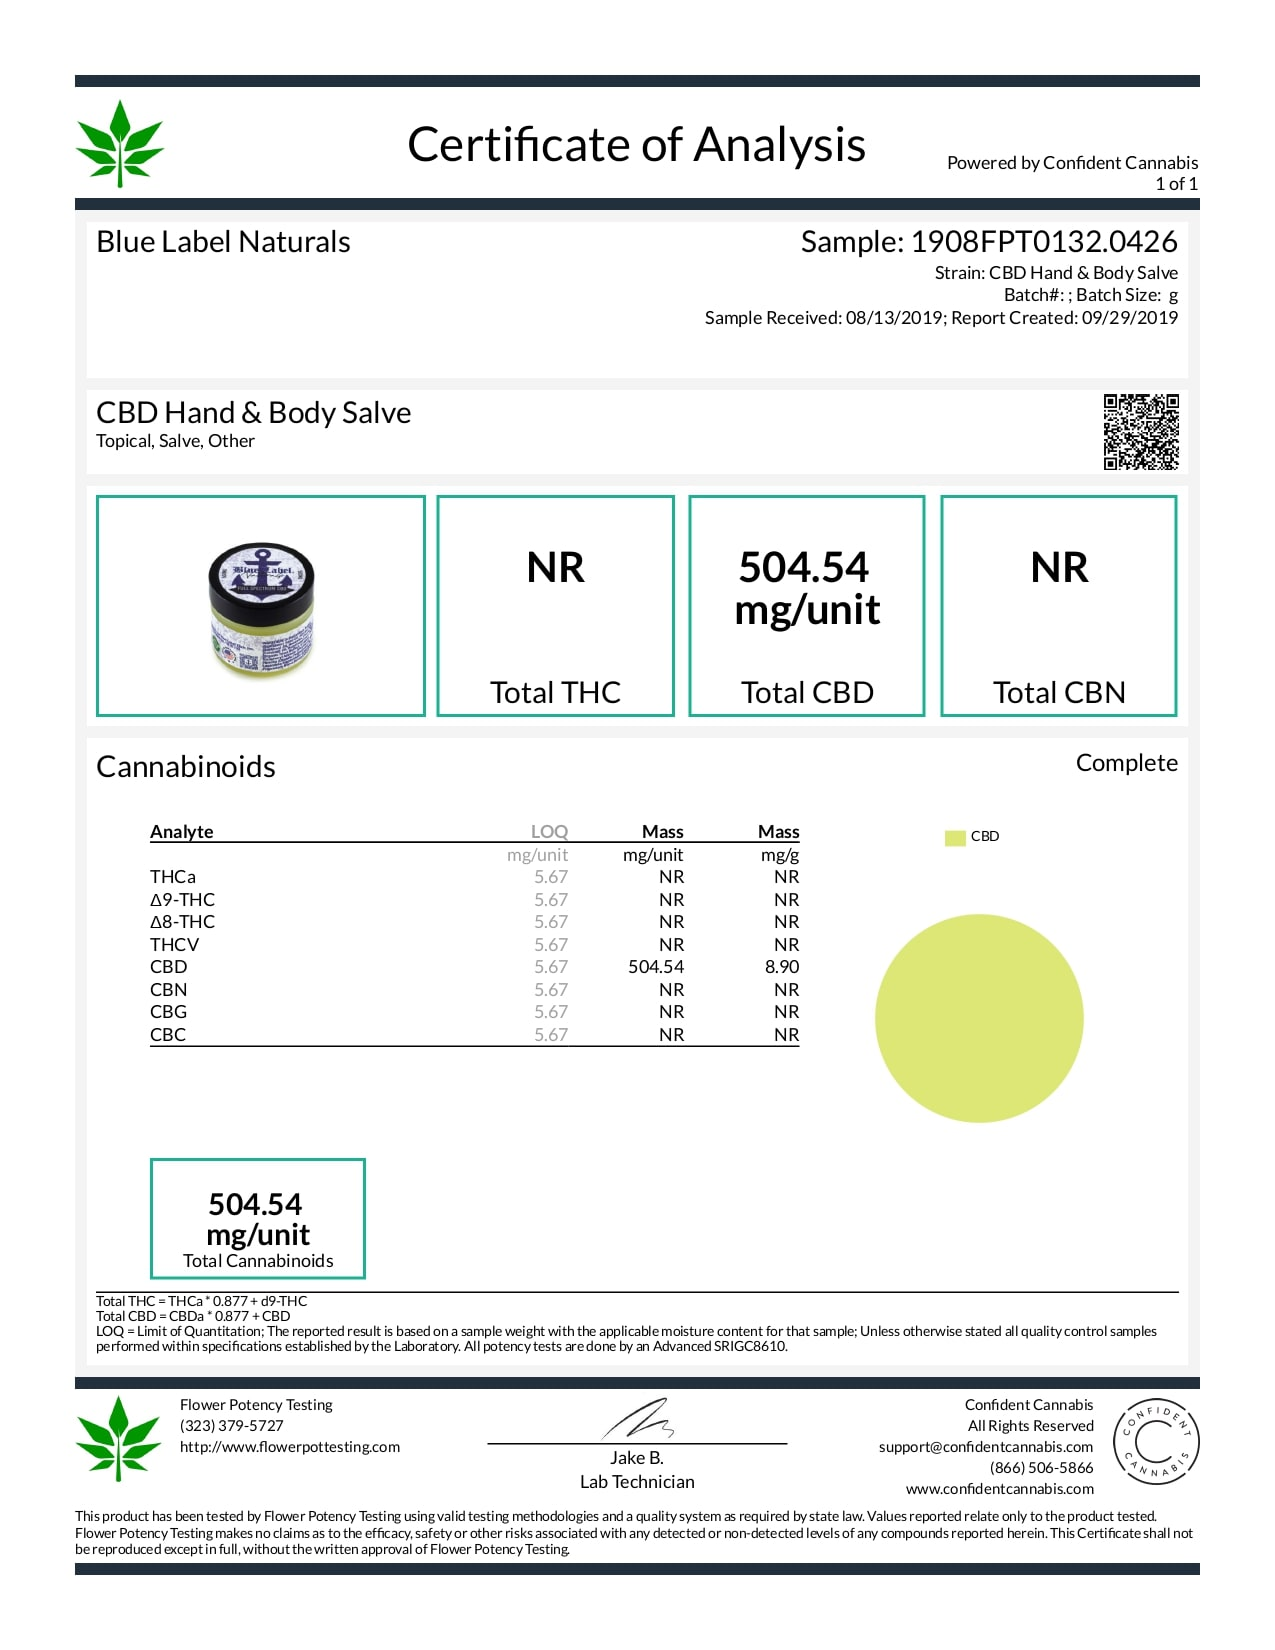 Blue Label CBD Topical Hand and Body Salve Lab Report